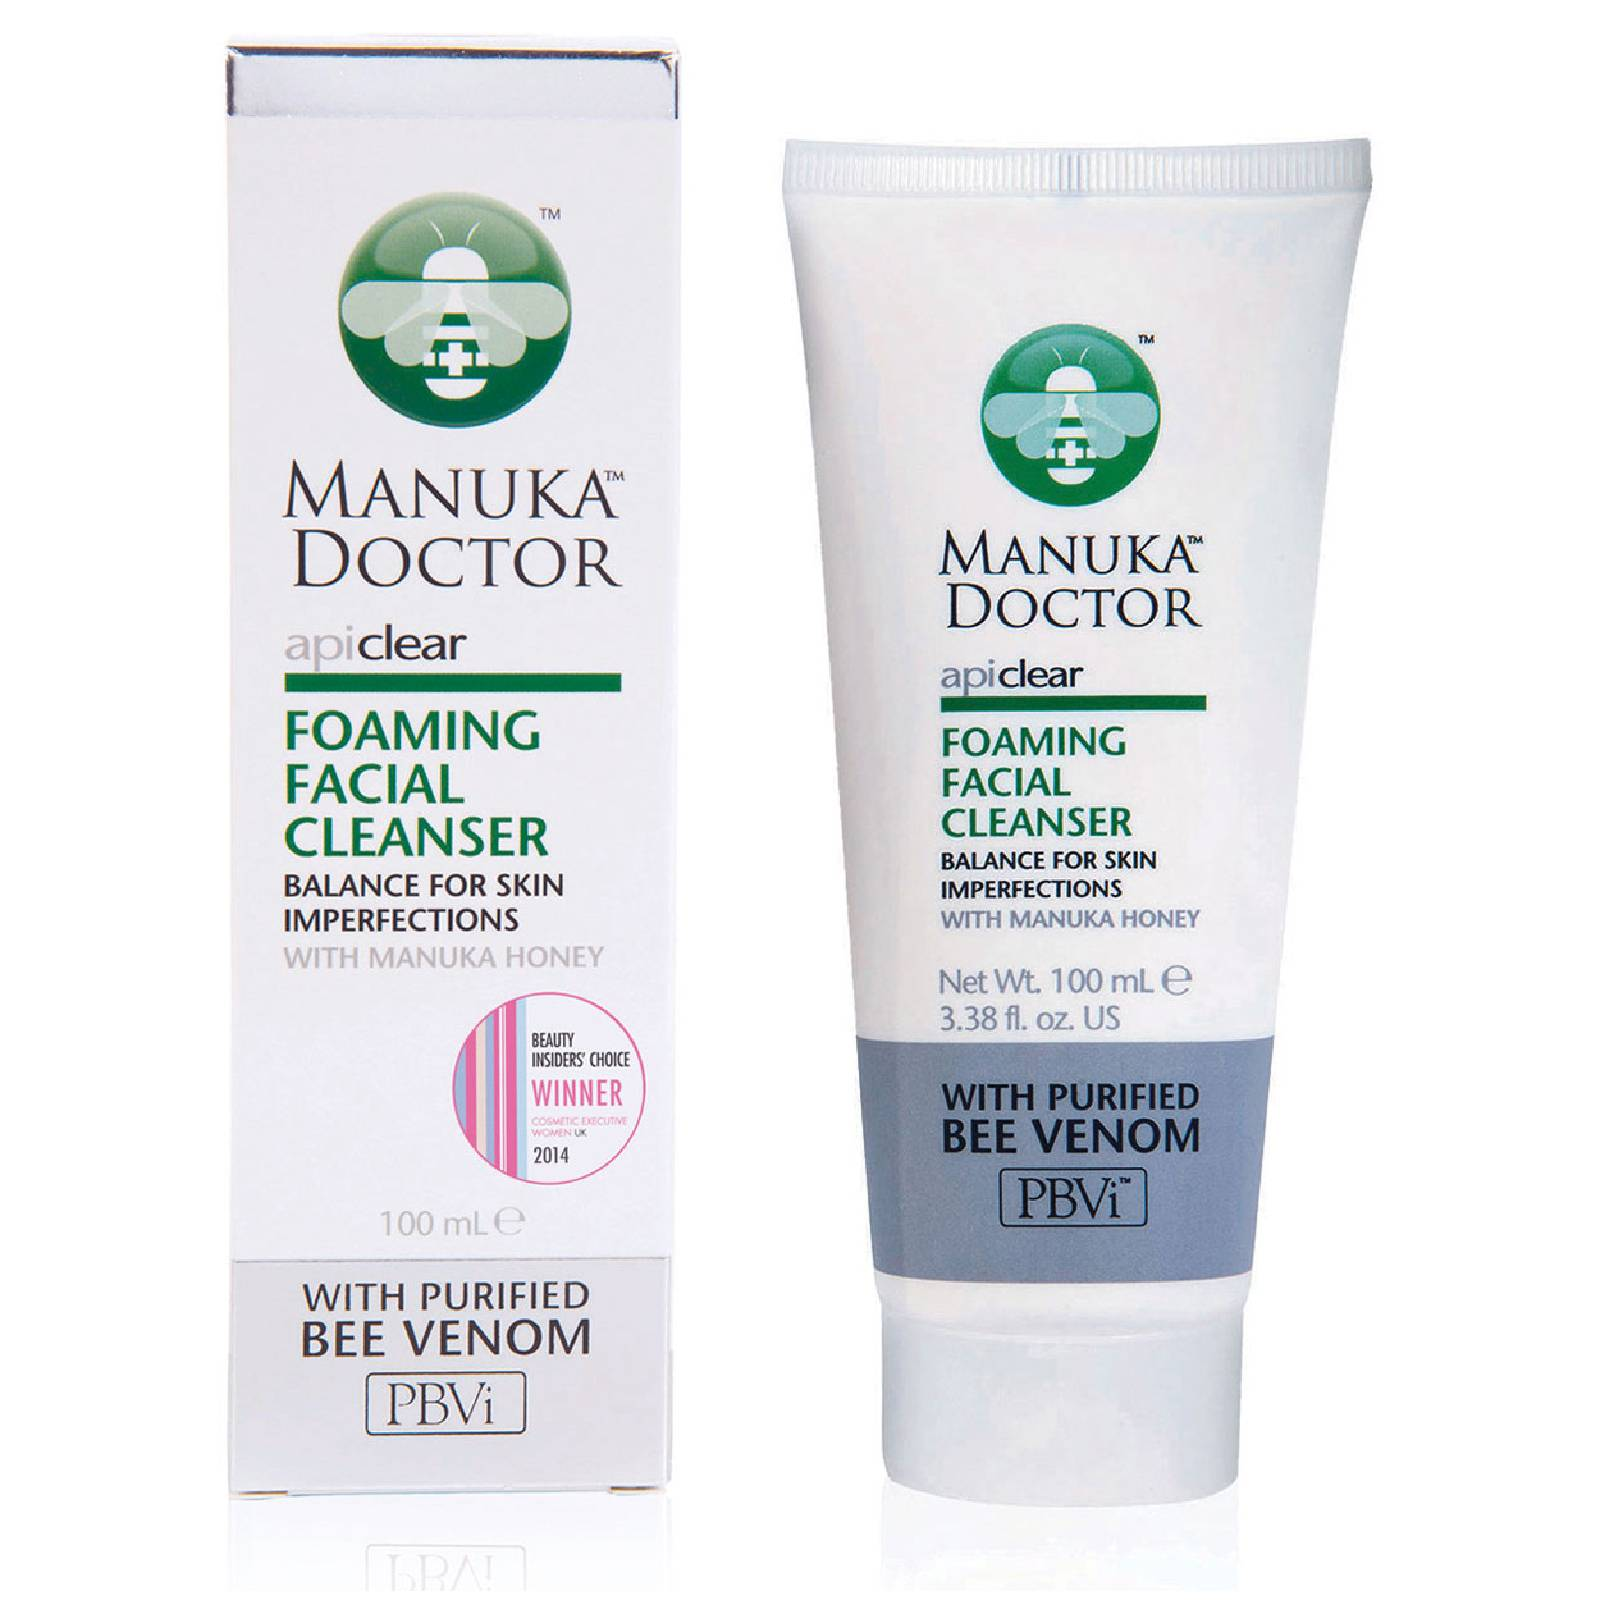 Manuka Doctor Foaming Facial Cleanser ApiClear Manuka Doctor 100 ml